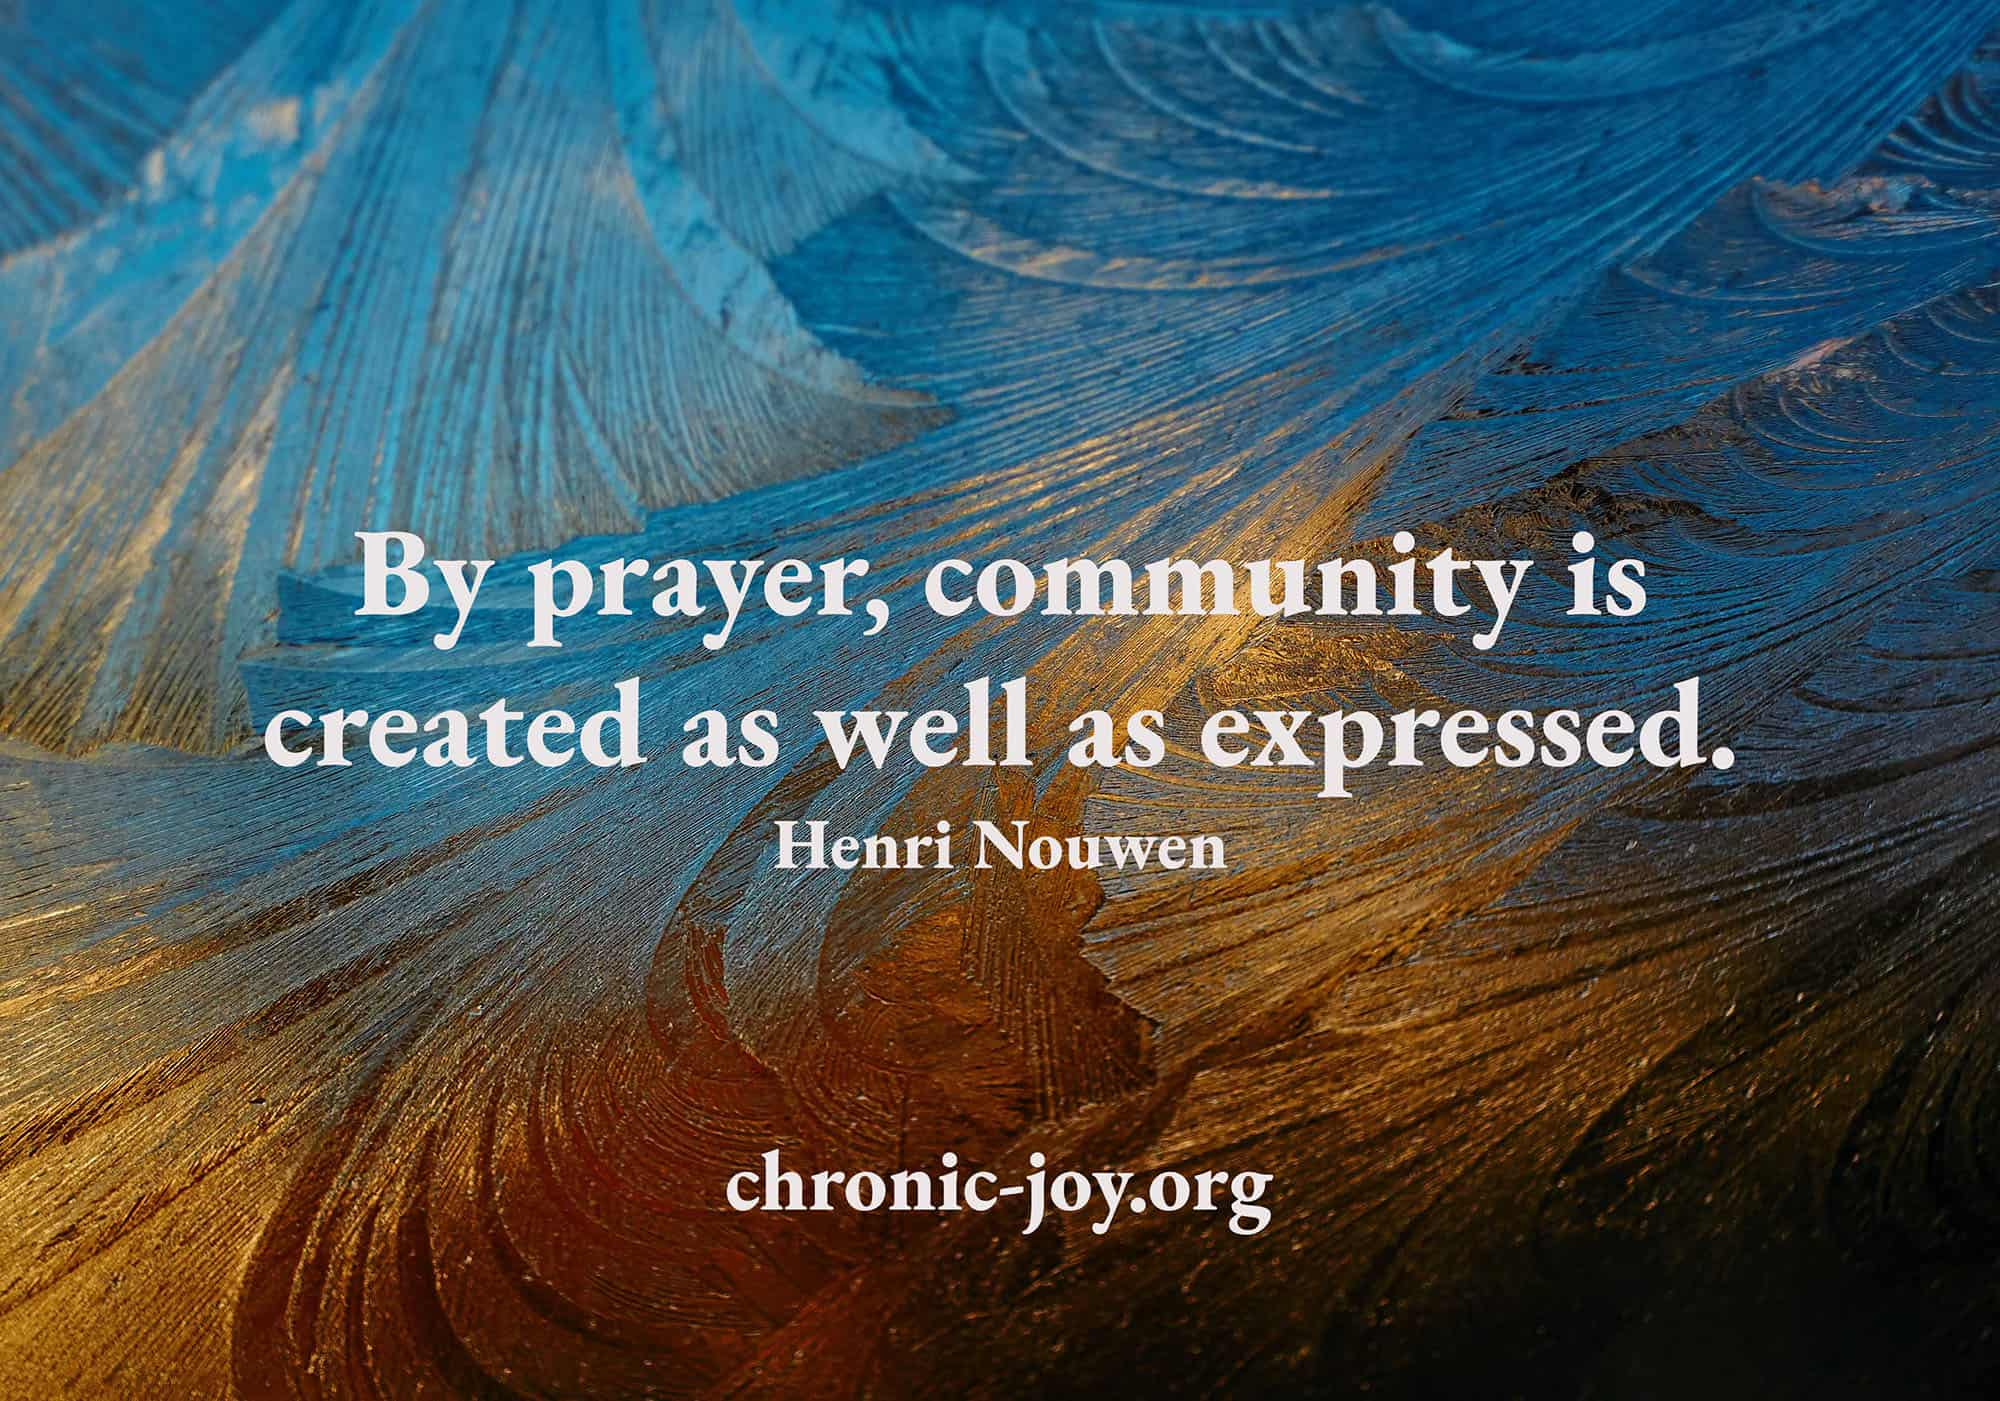 By Prayer Community is Created and Expressed